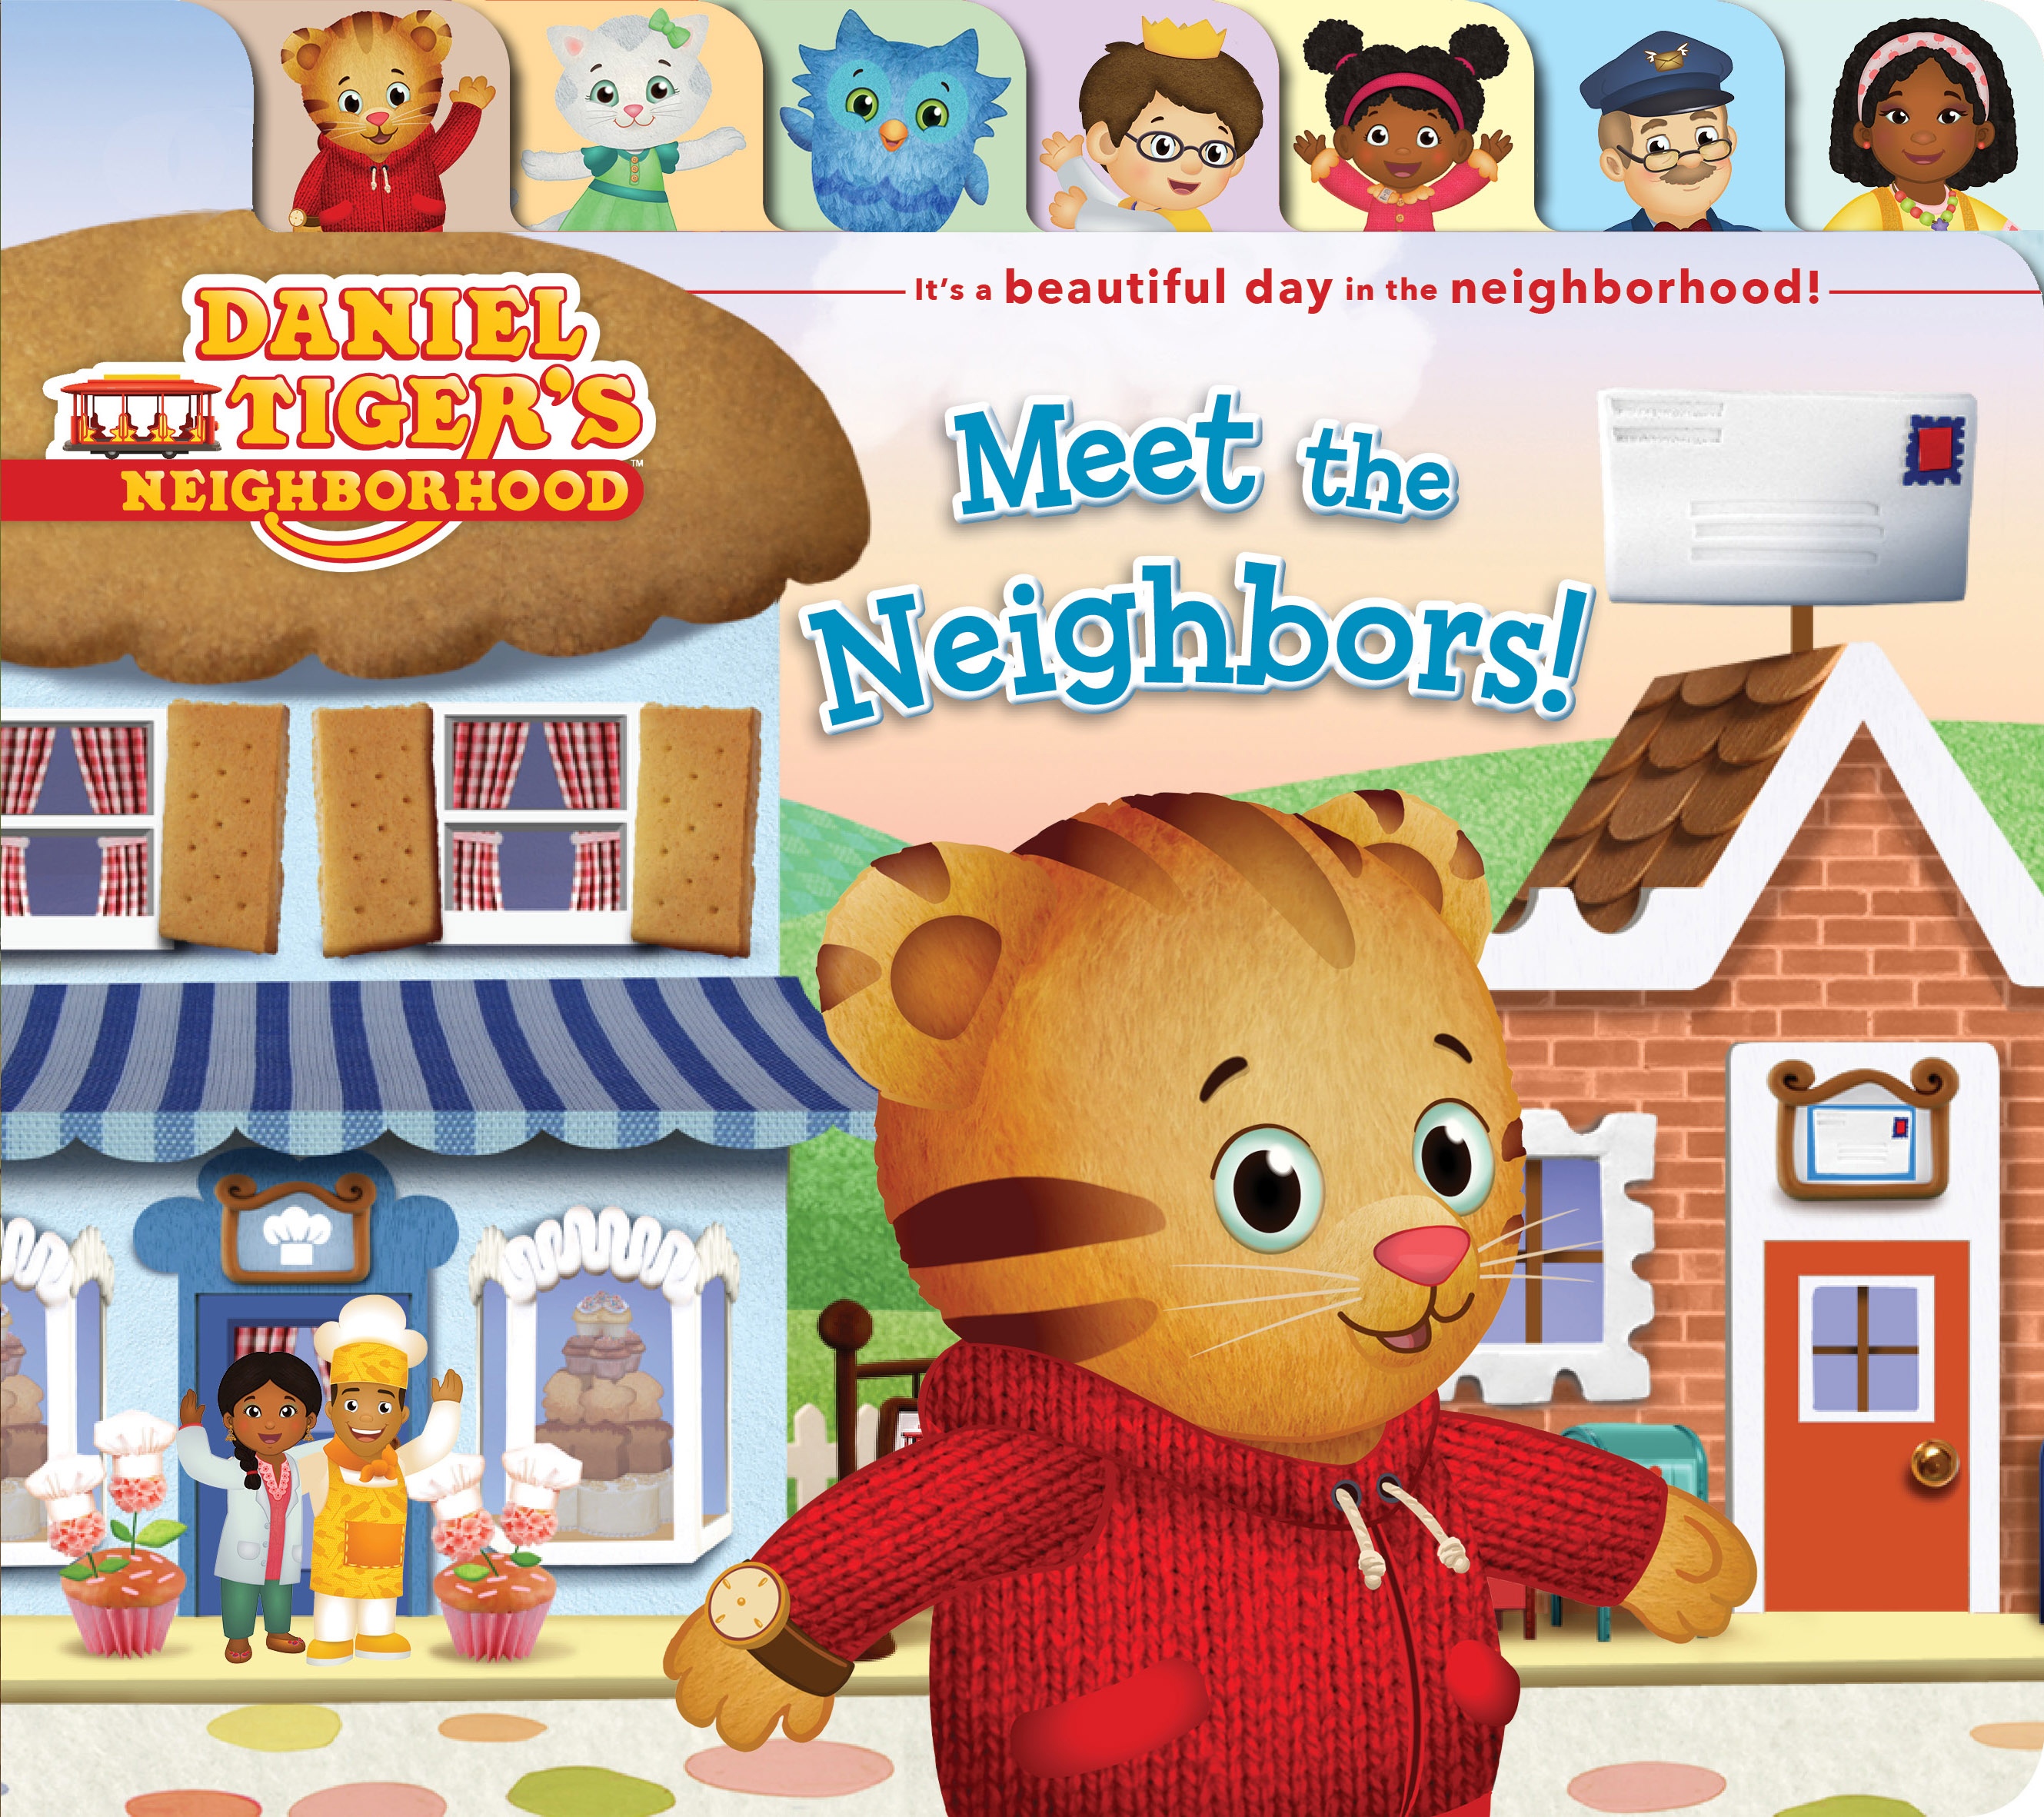 Meet the Neighbors! (Part of Daniel Tiger's Neighborhood) By Natalie Shaw